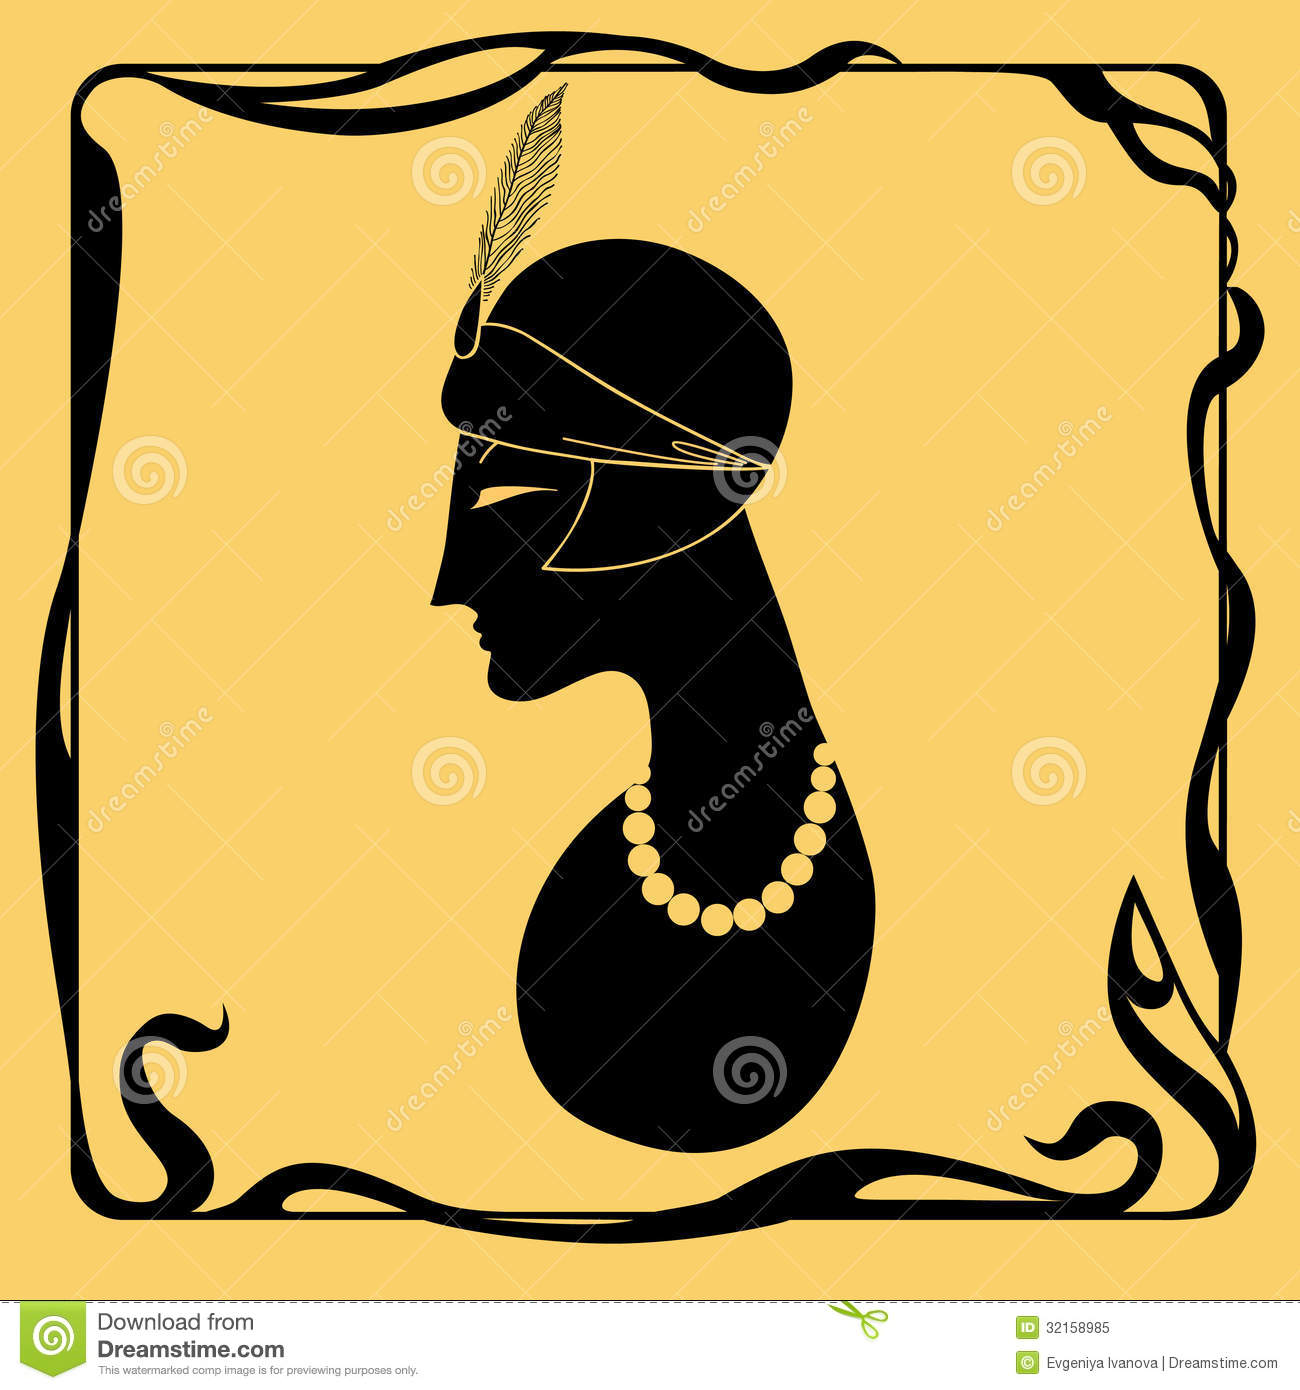 Le Paysage Dhiver likewise 20161013092616 tapis Salon Vert Deau likewise Vintage Art Wallpaper furthermore Art Deco House 174907312 together with Royalty Free Stock Photo Art Deco Woman Silhouette Elegant Pofile Image32158985. on art deco wallpaper